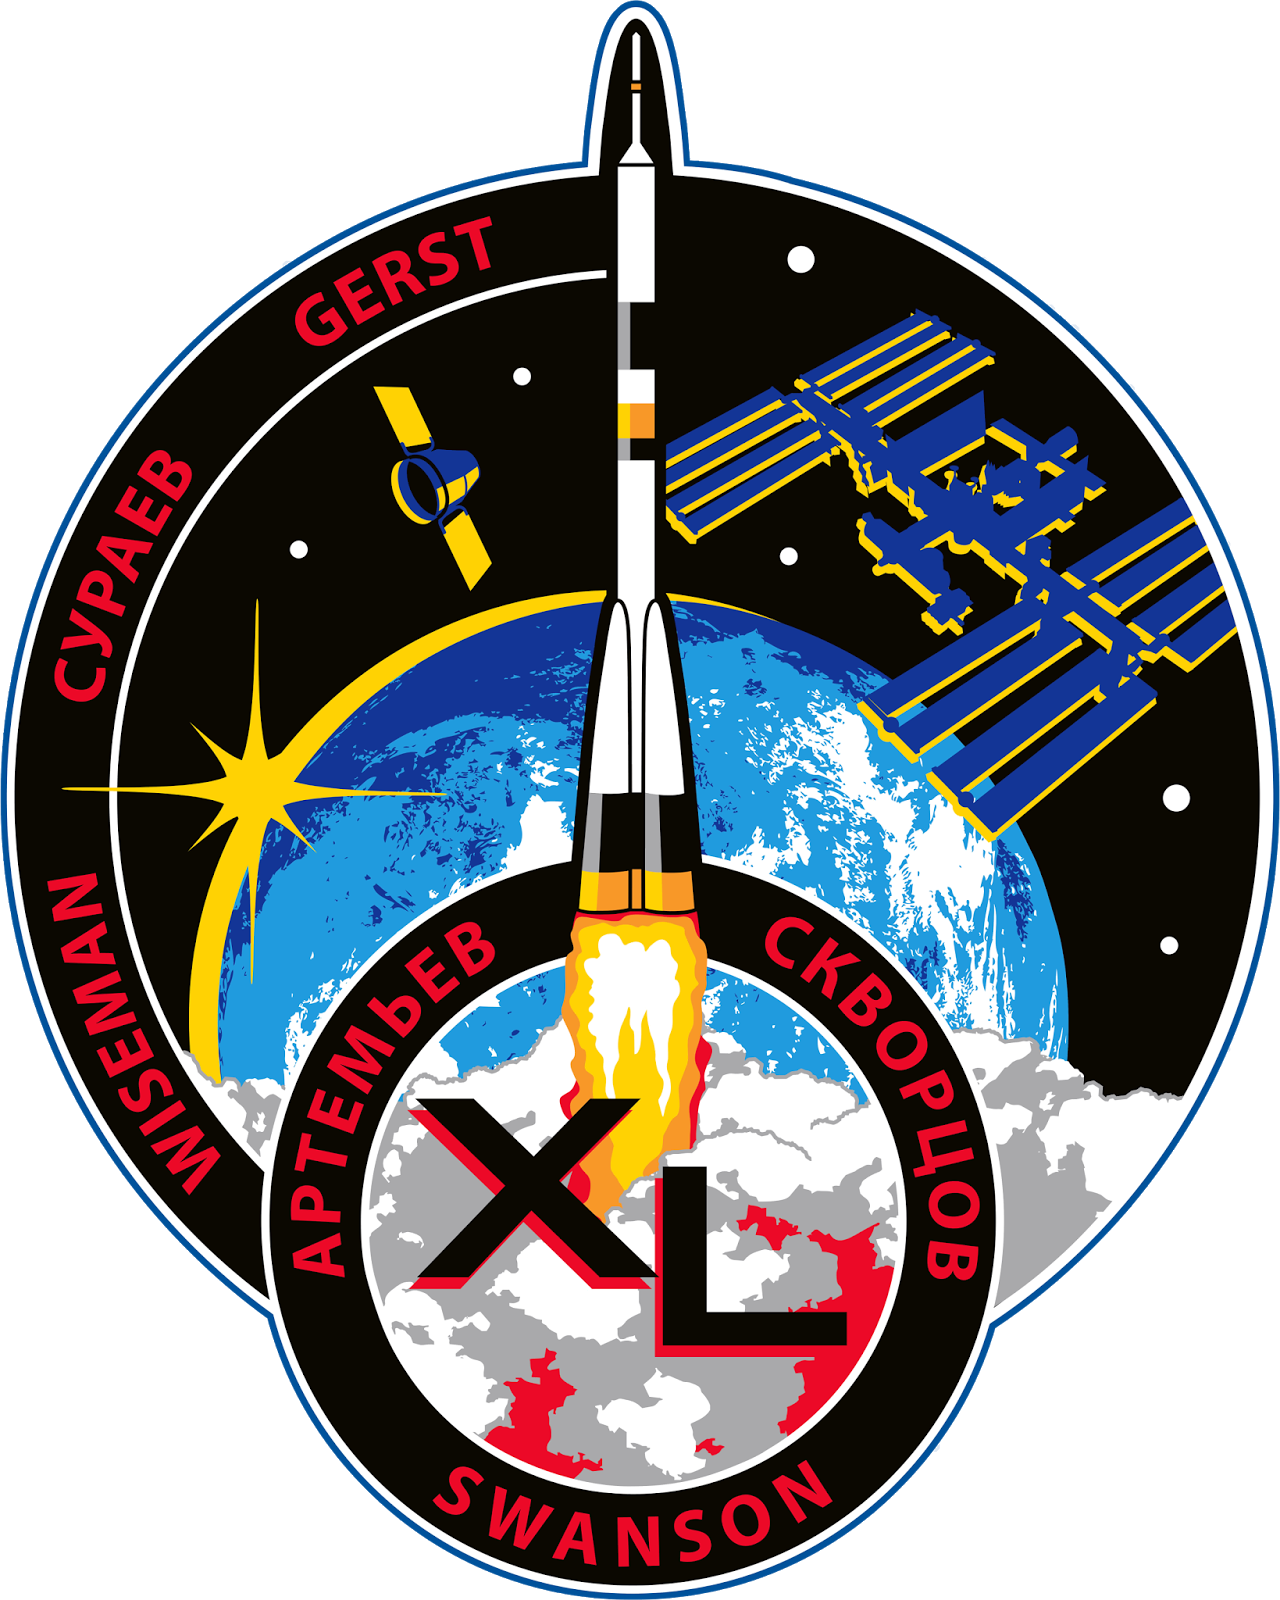 Mission Patches On Mission 4 To The International Space: Orbiter.ch Space News: Astronauts To Watch World Cup